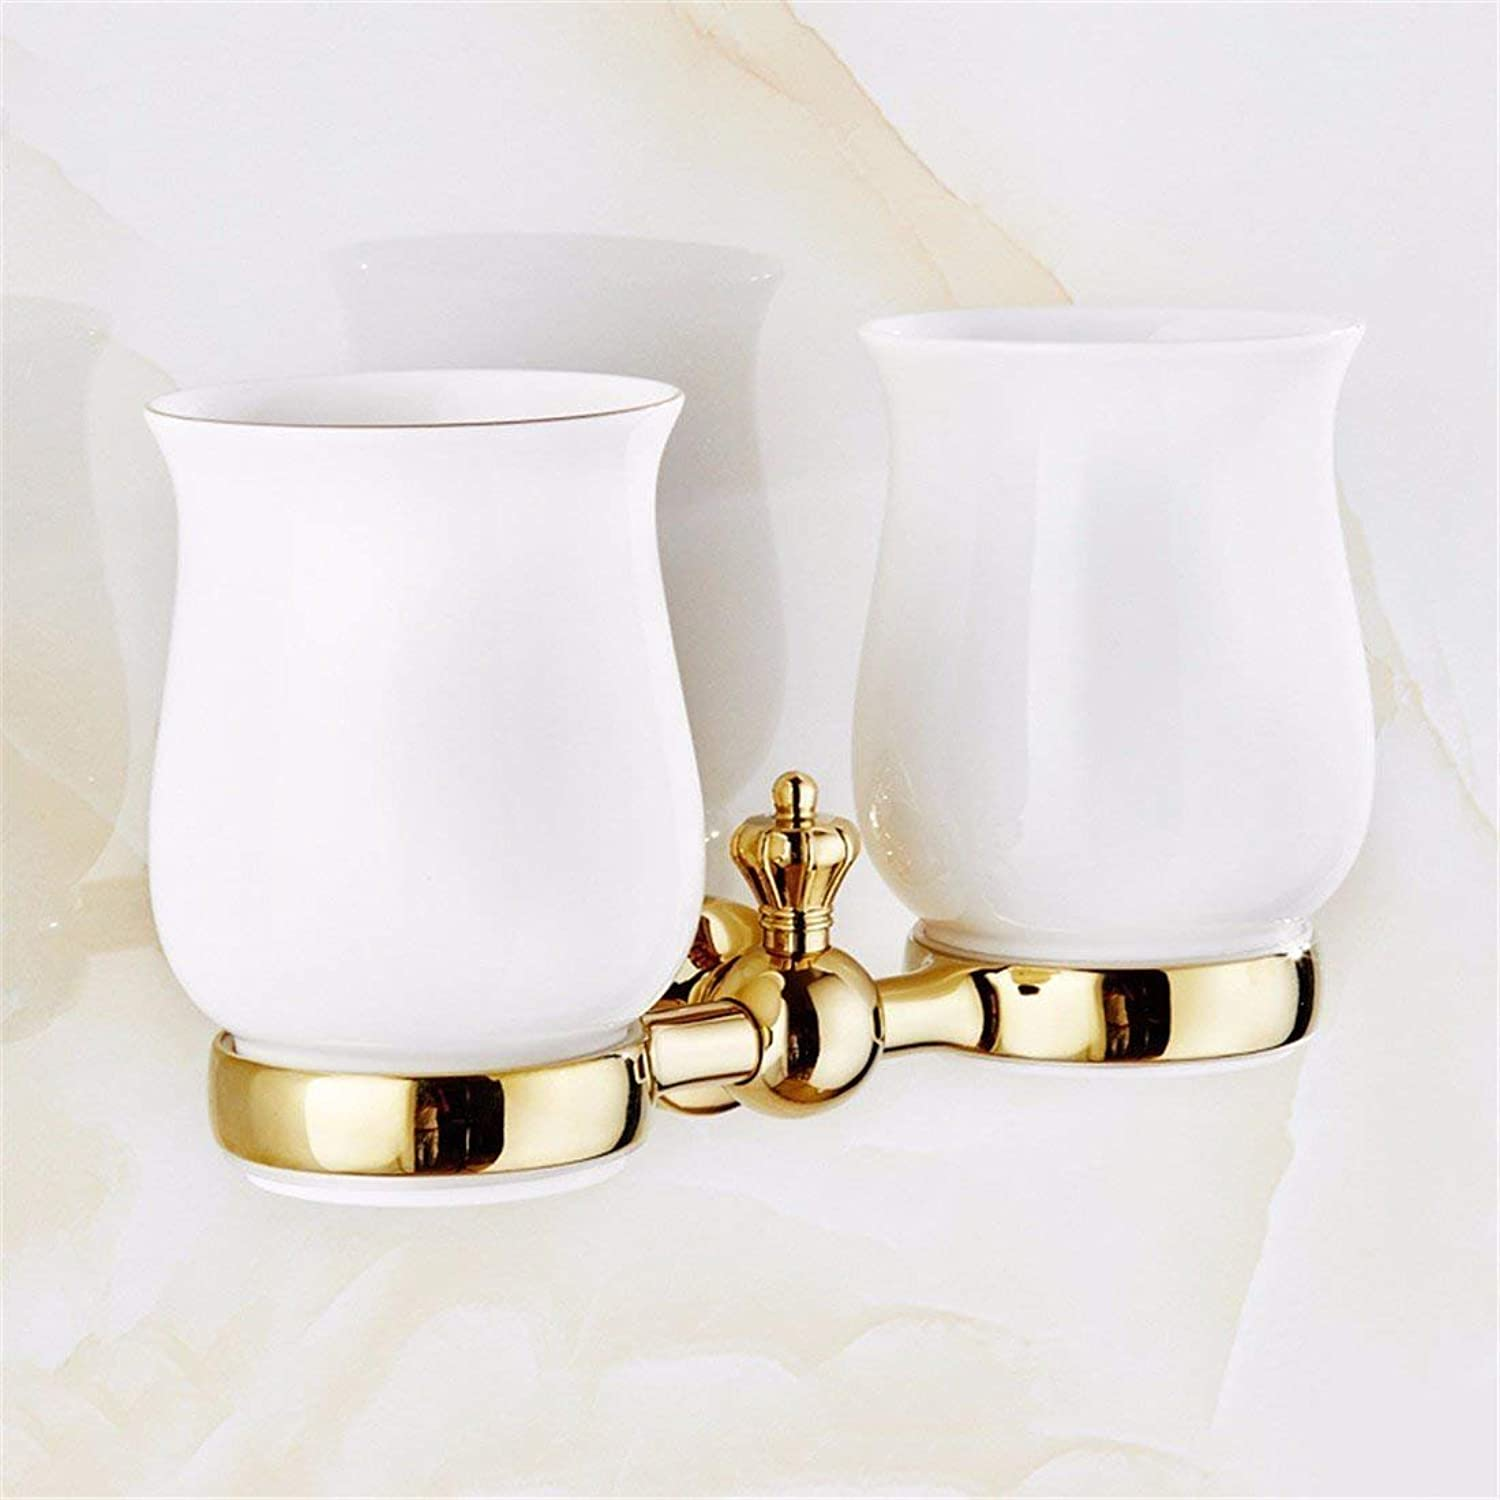 Accessories for Bathroom The Carved Archaize Copper-gold-Dry-Towels, Dual Function Cup